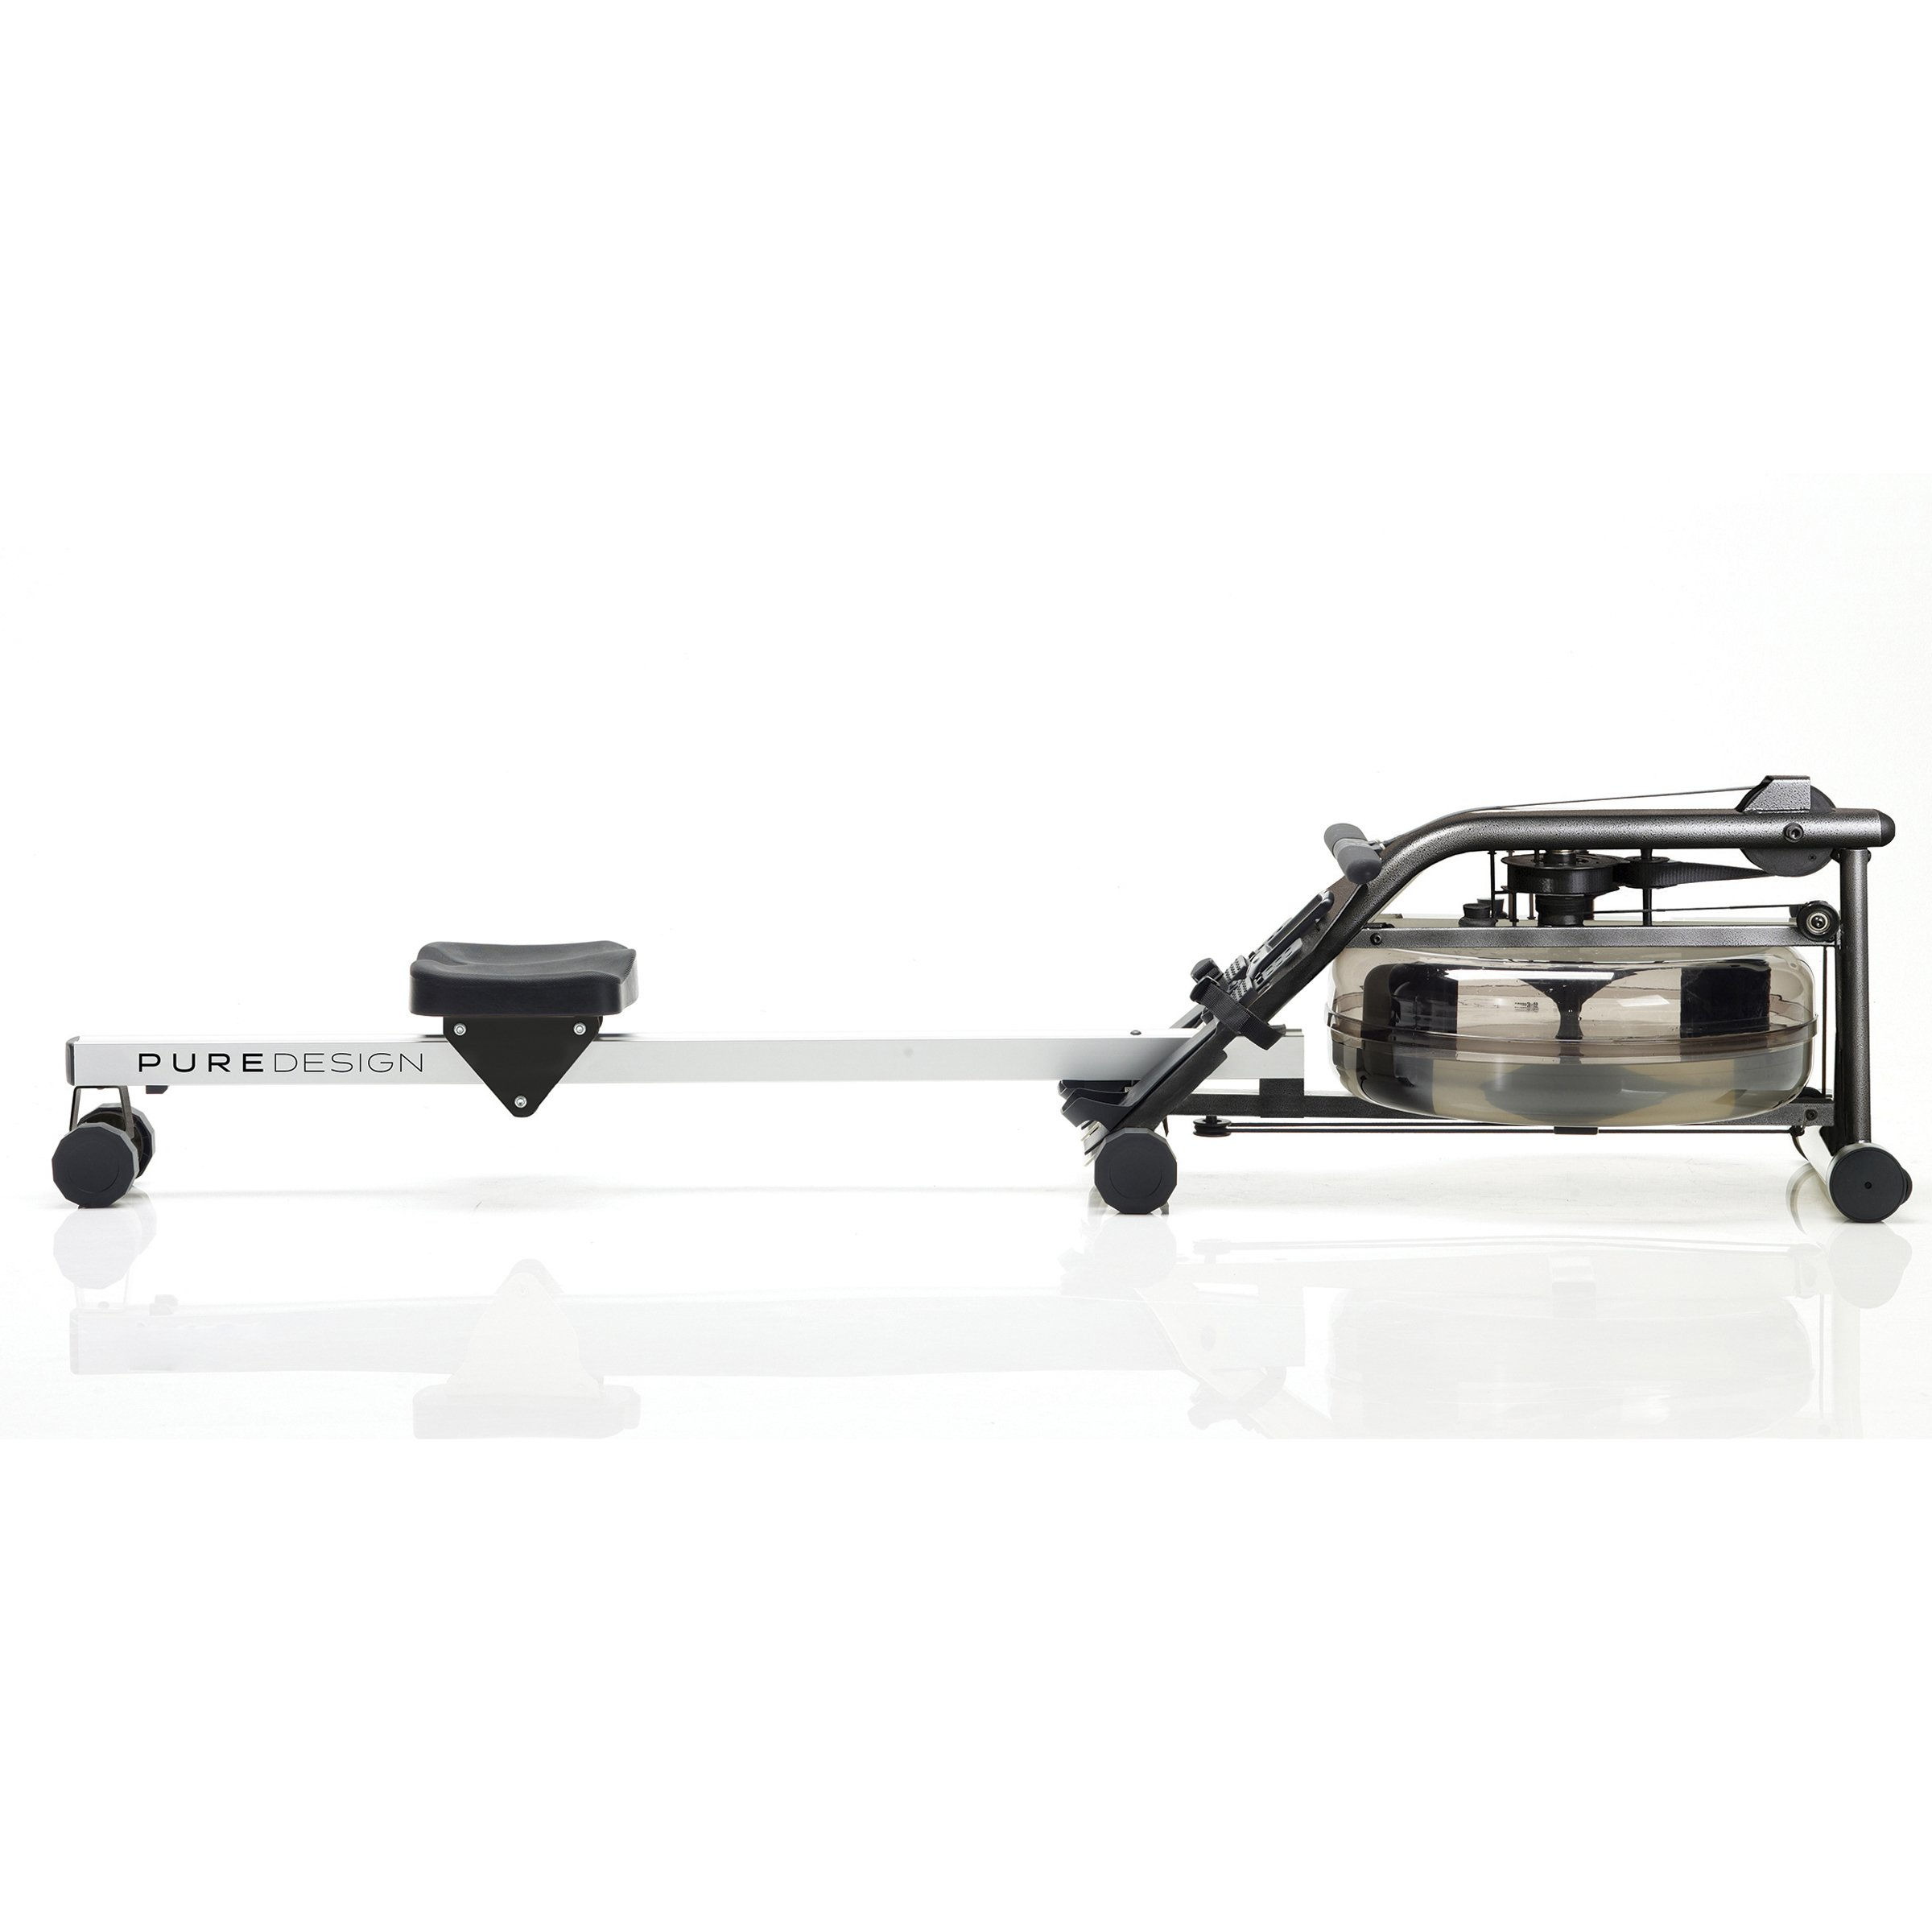 Indoor Rowing Machine by Pure Design Fitness - Virtus by Pure Design Fitness